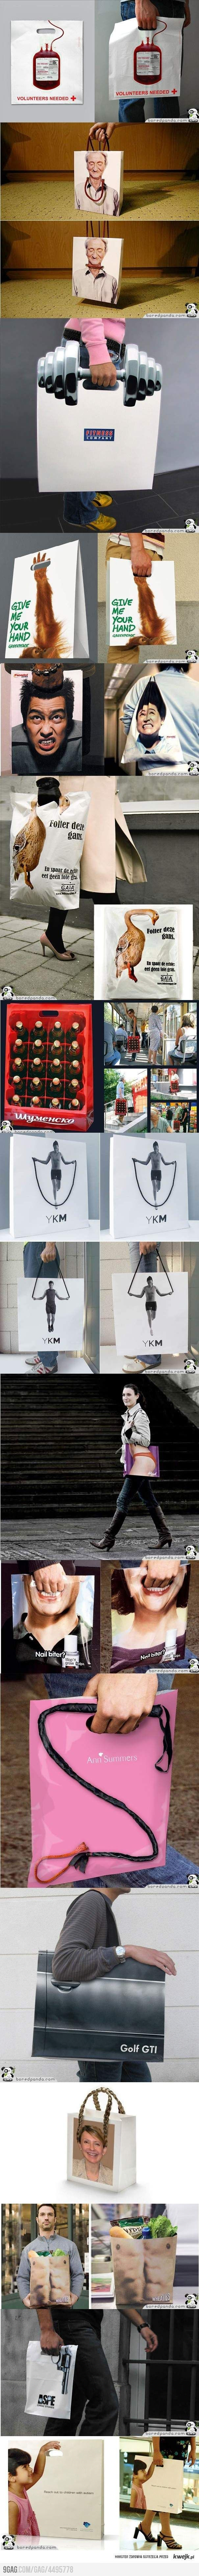 Amazing advertising on shopping bags